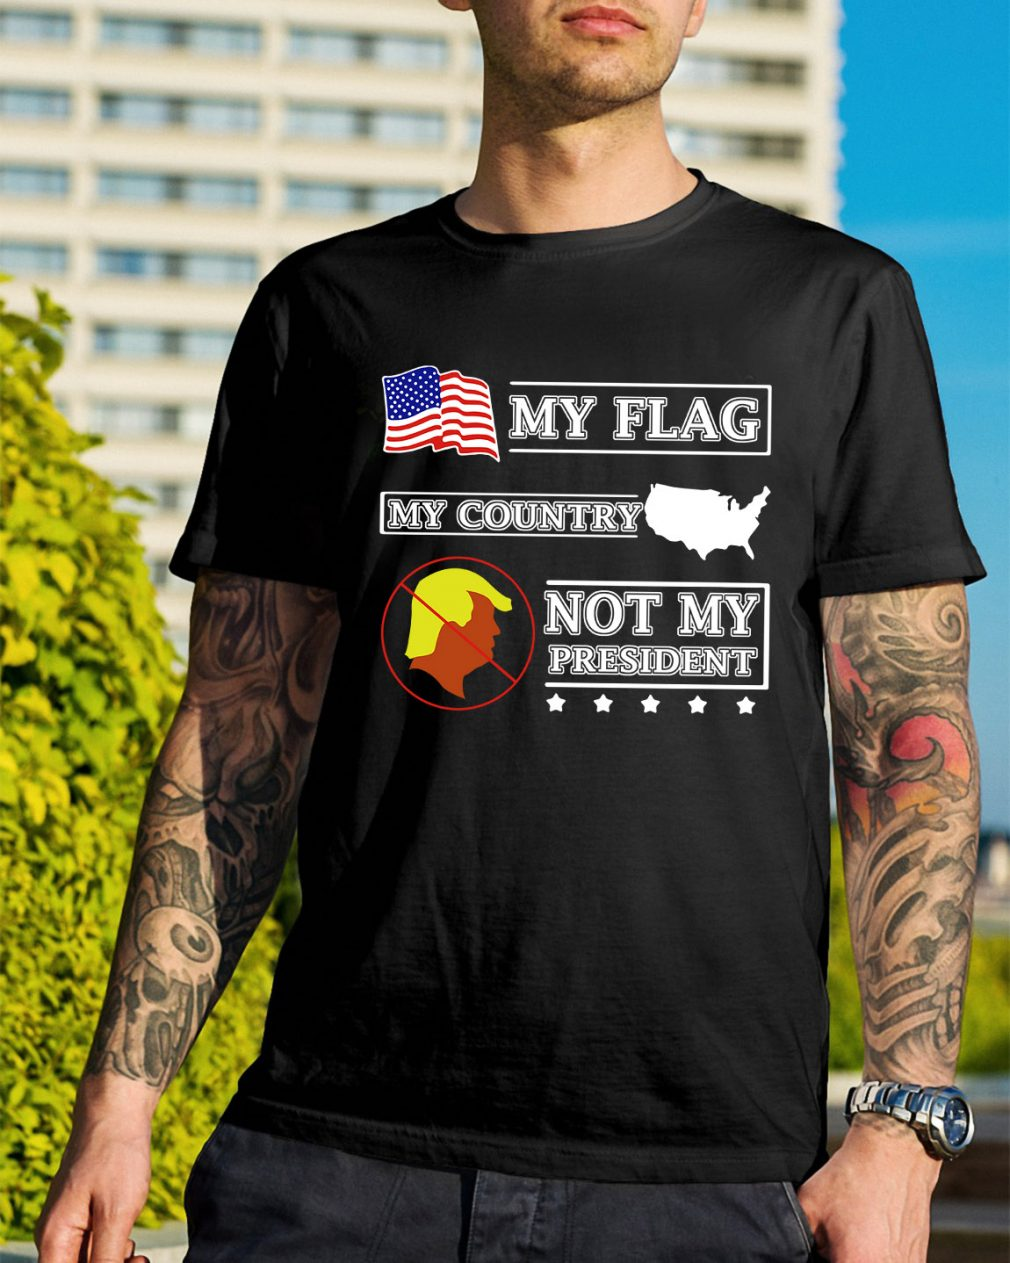 My flag my country Trump not my president shirt